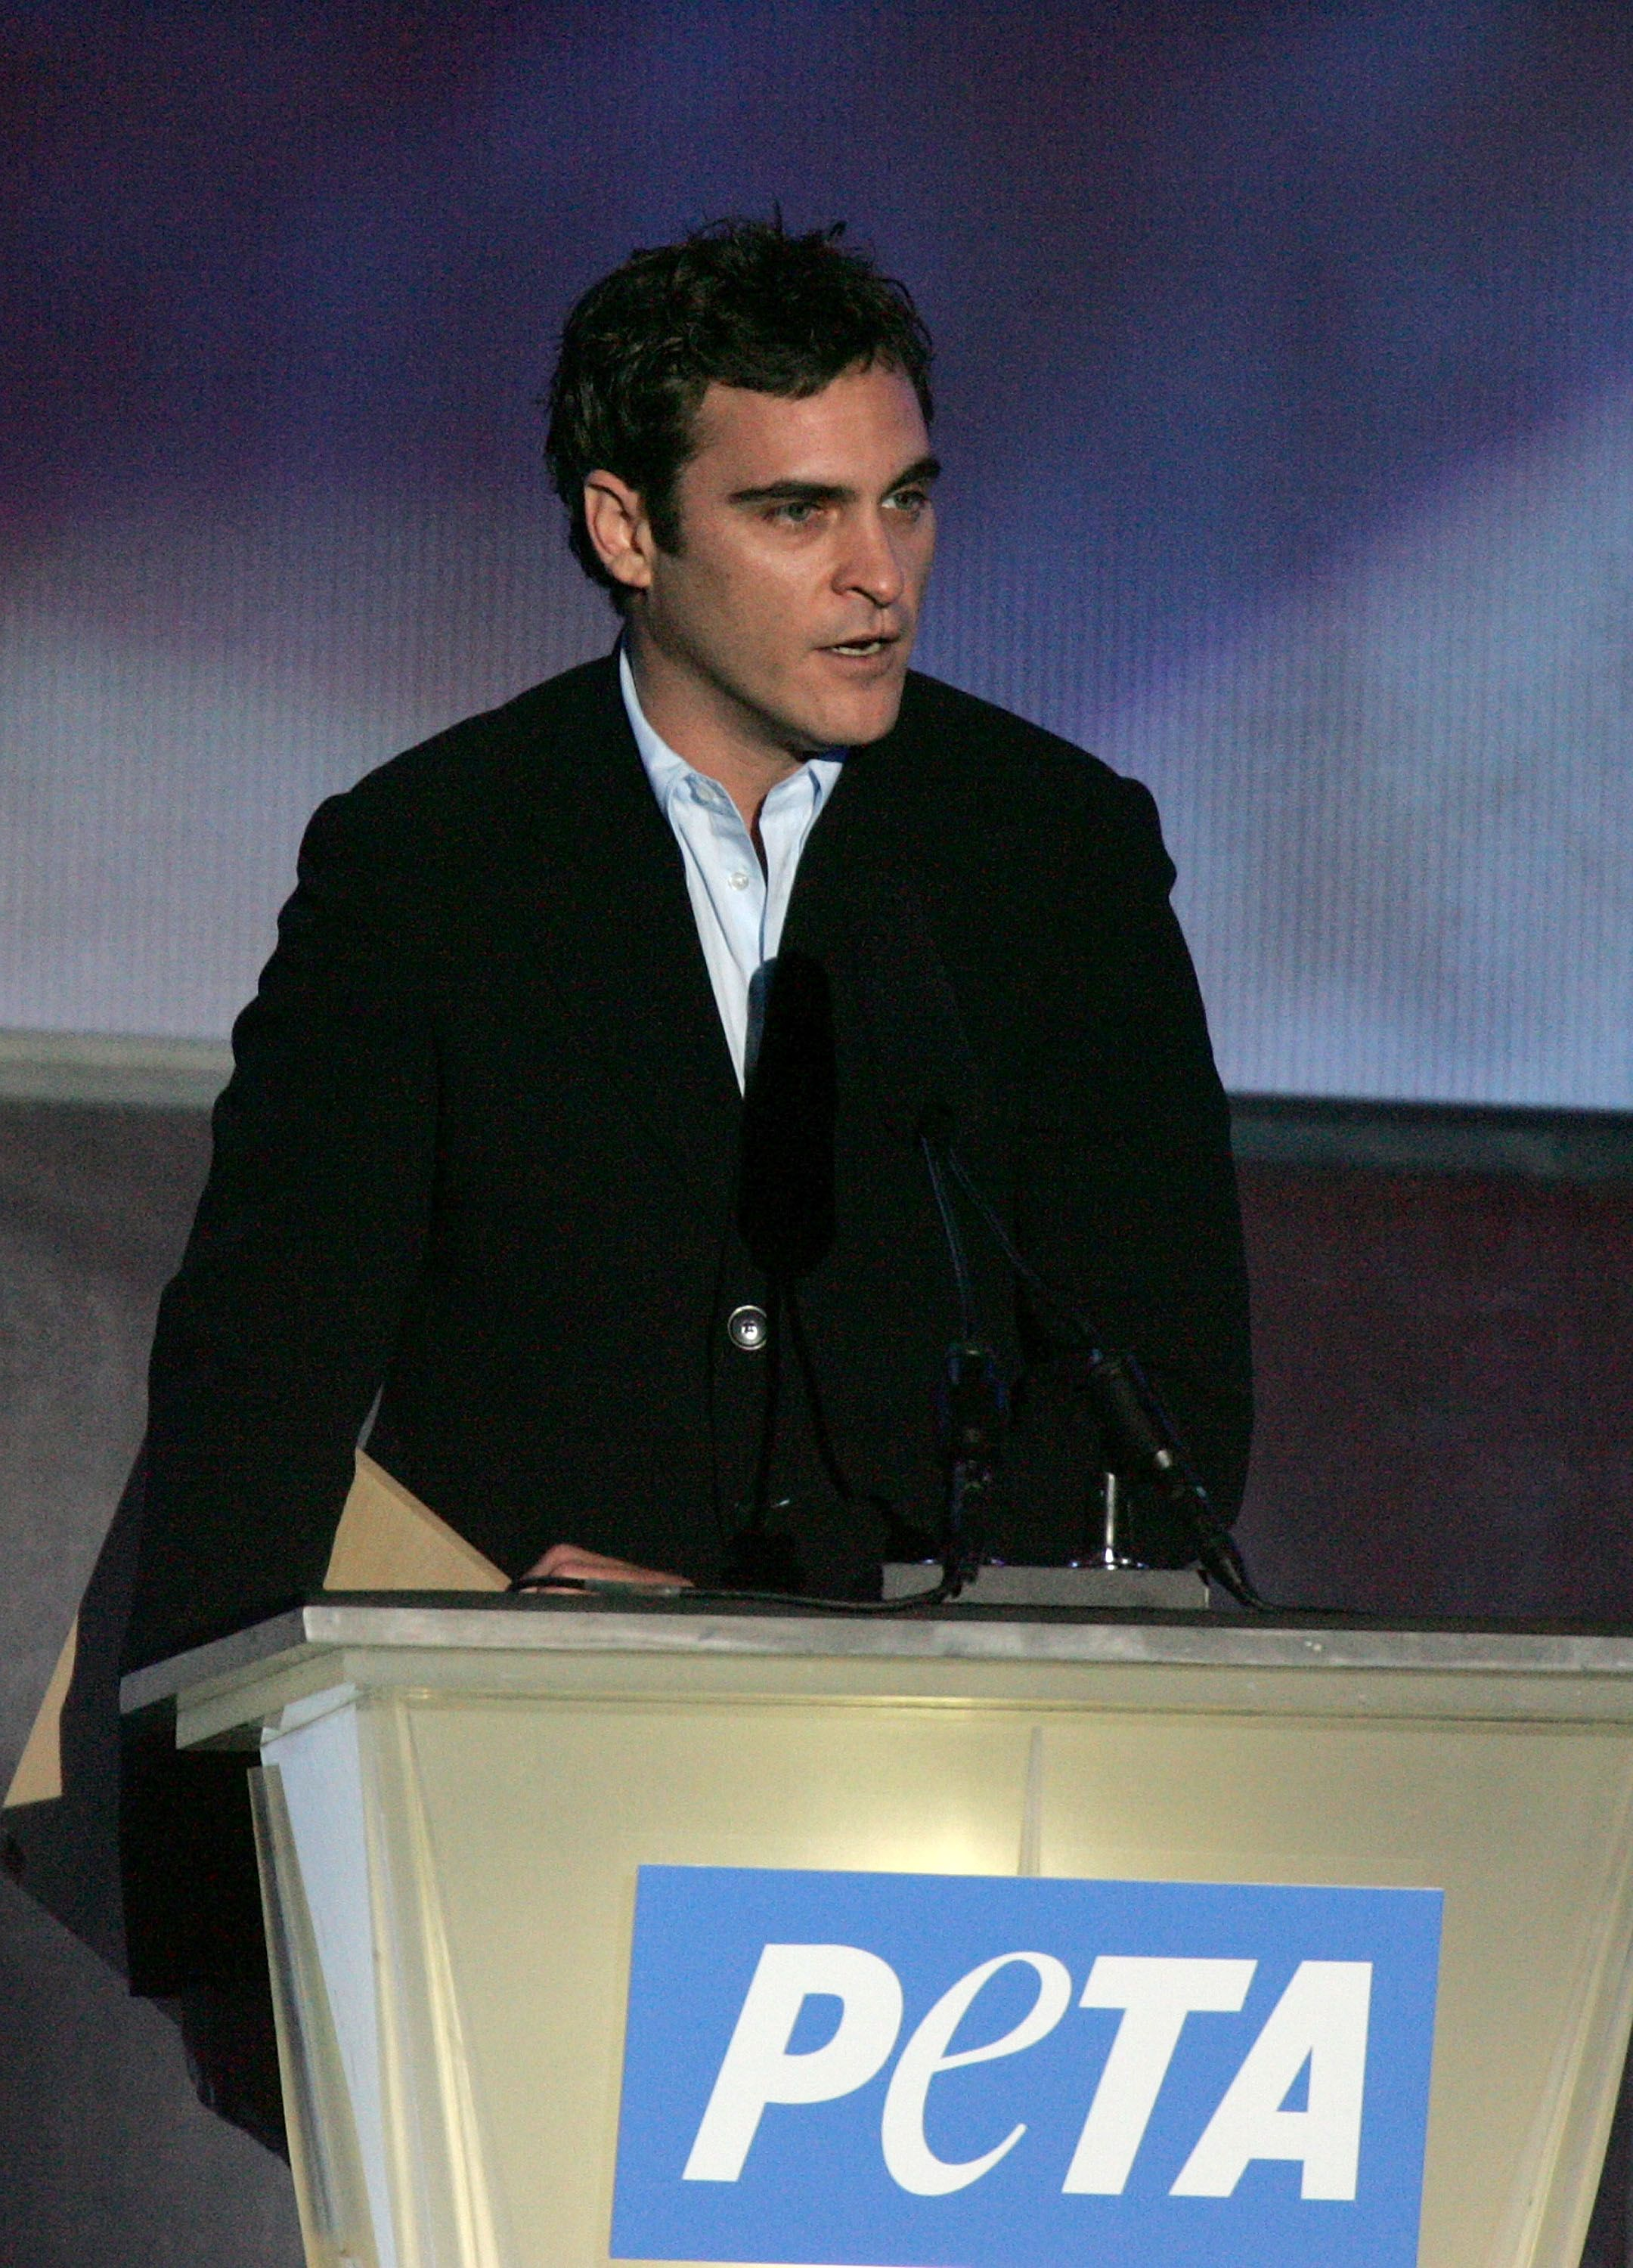 HOLLYWOOD - SEPTEMBER 10: Actor Joaquin Phoenix accepts the Humanitarian Award on behalf of Casey Affleck during PETA's 15th Anniversary Gala and Humanitarian Awards at Paramount Studios on September 10, 2005 in Hollywood, California. | Foto von: Kevin Winter/ Getty Images